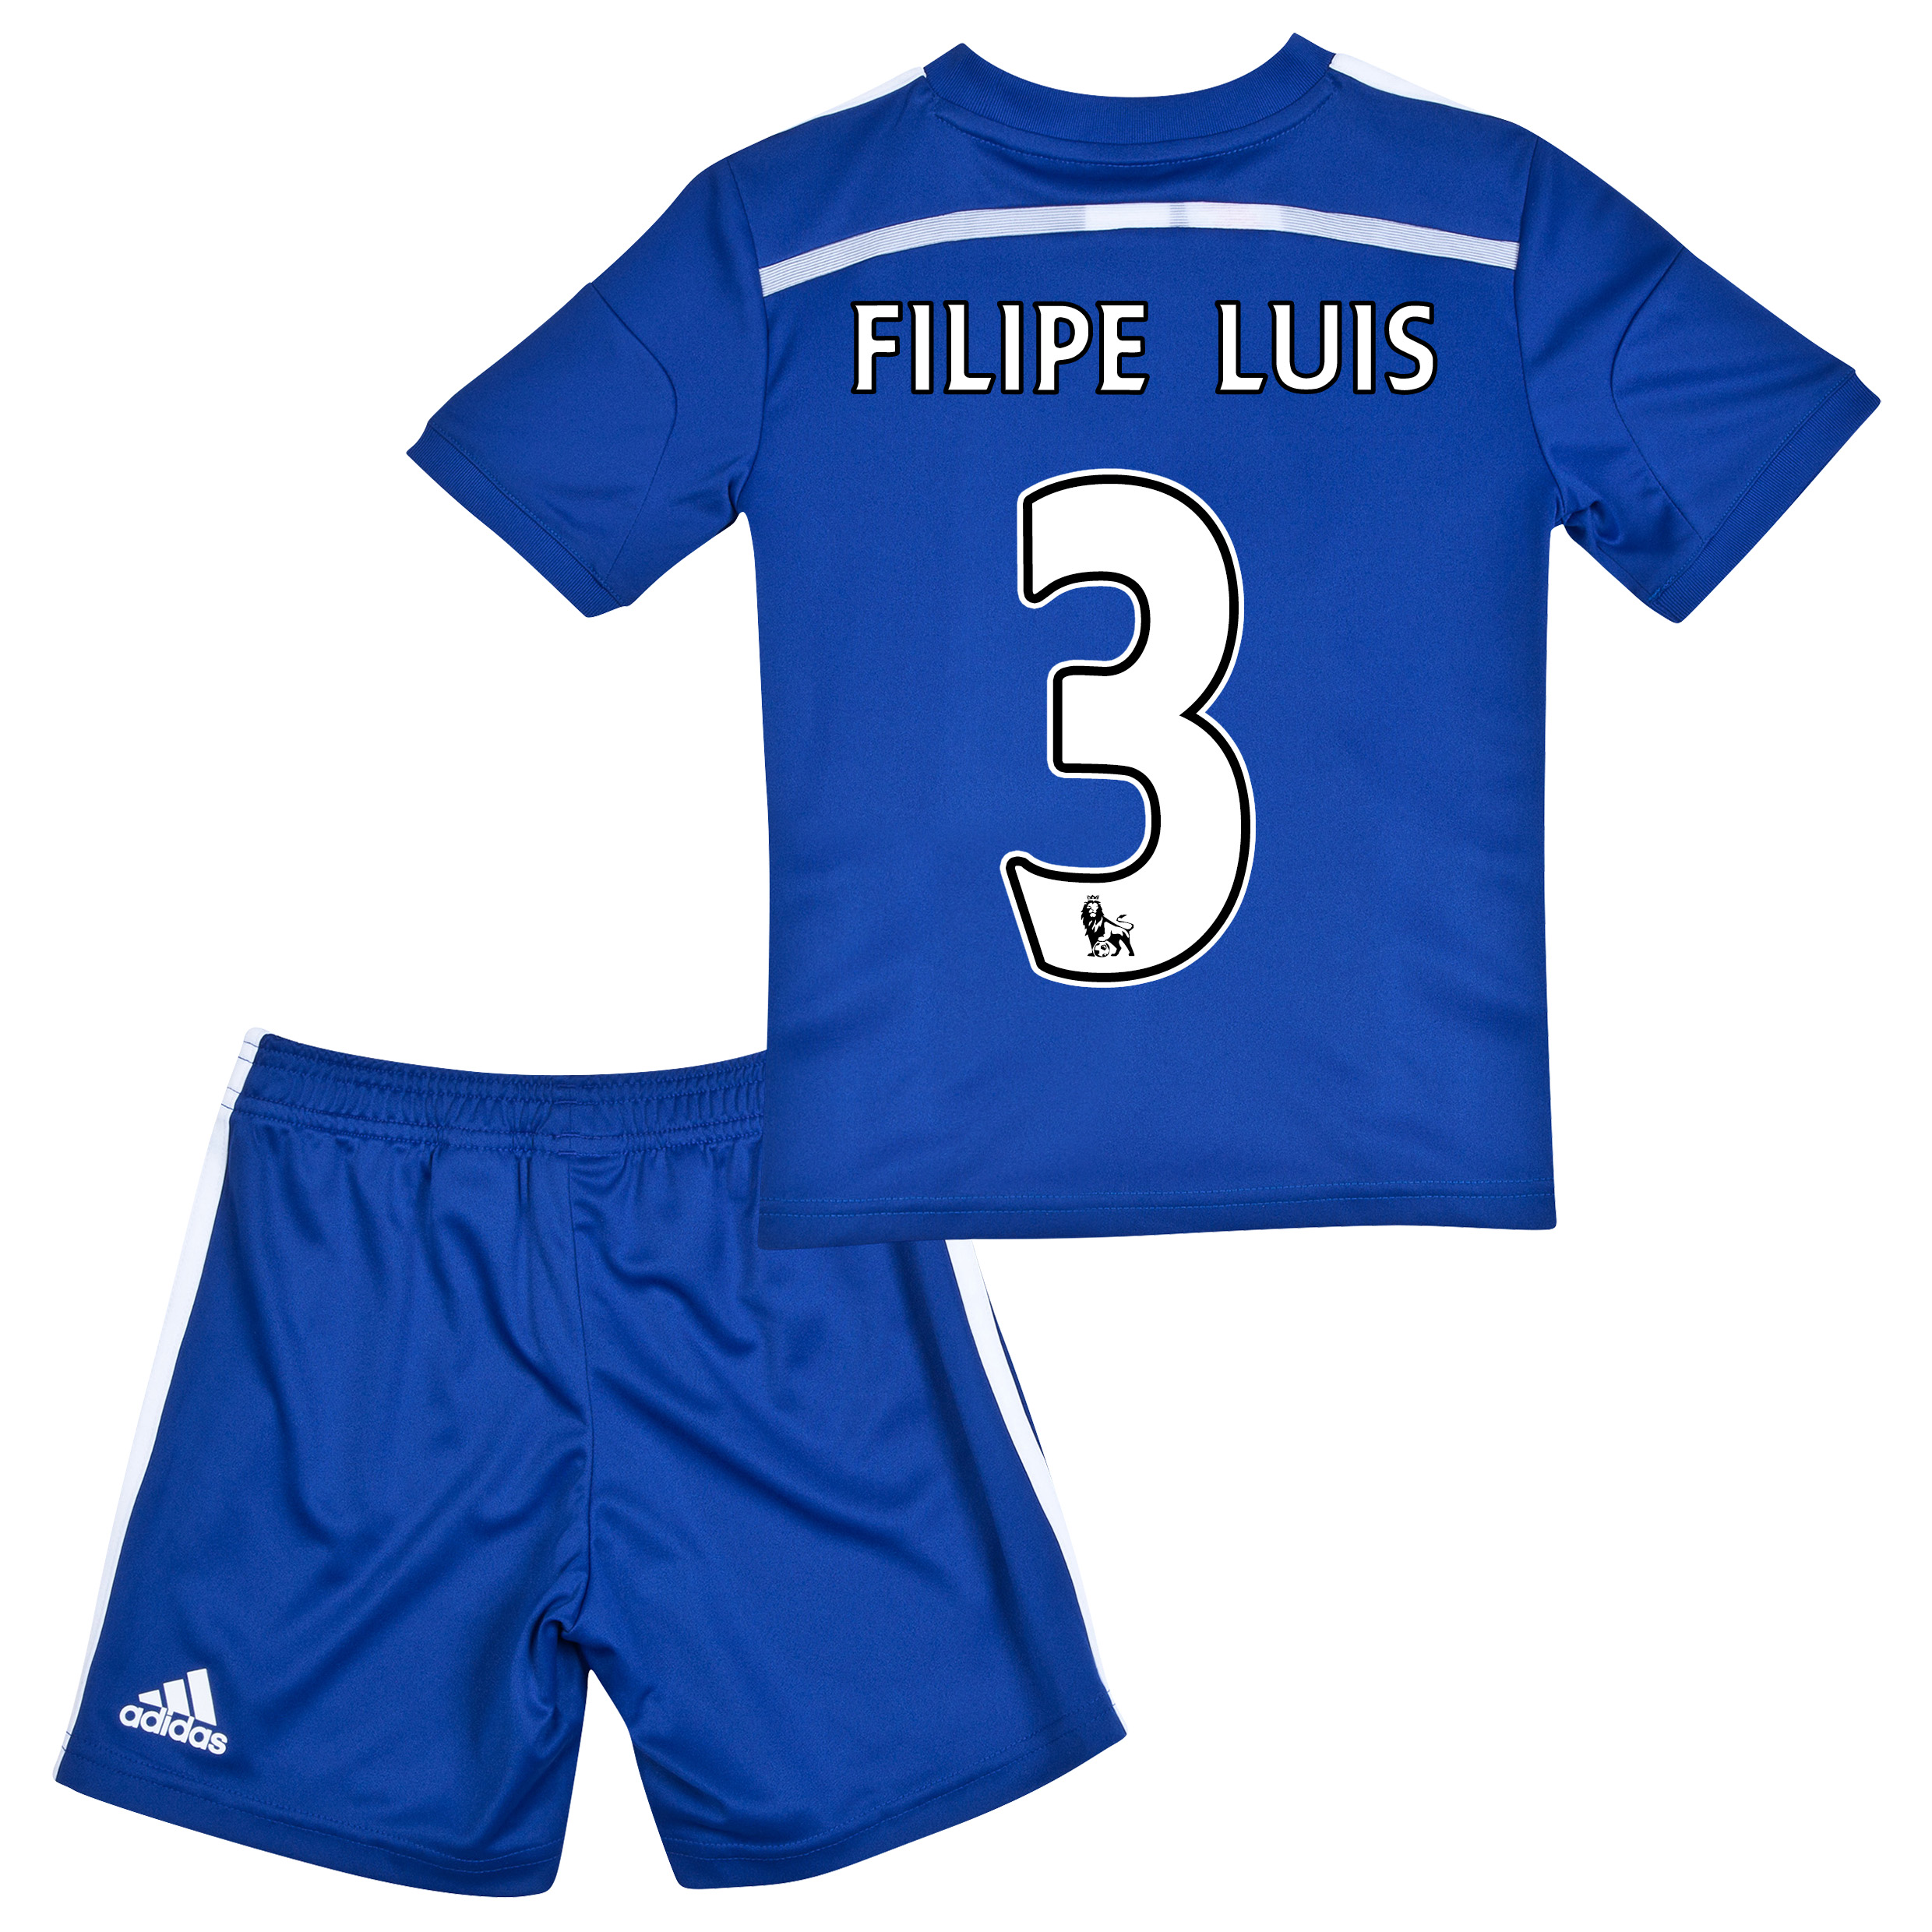 Chelsea Home Mini Kit 2014/15 with FILIPE LUIS 3 printing